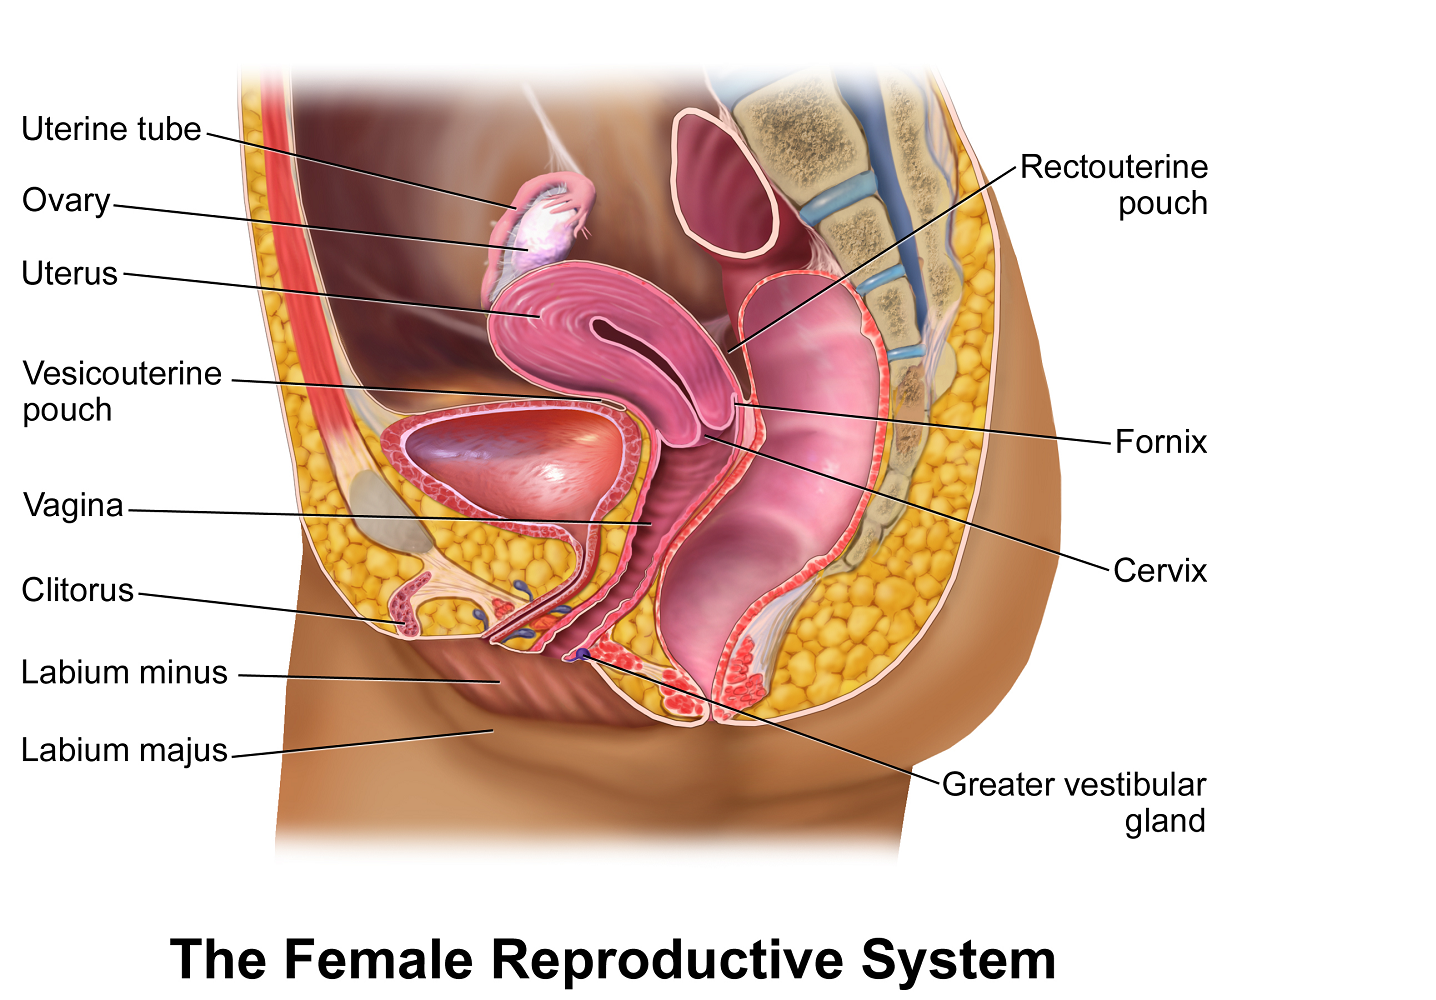 FemaleReproductive.png